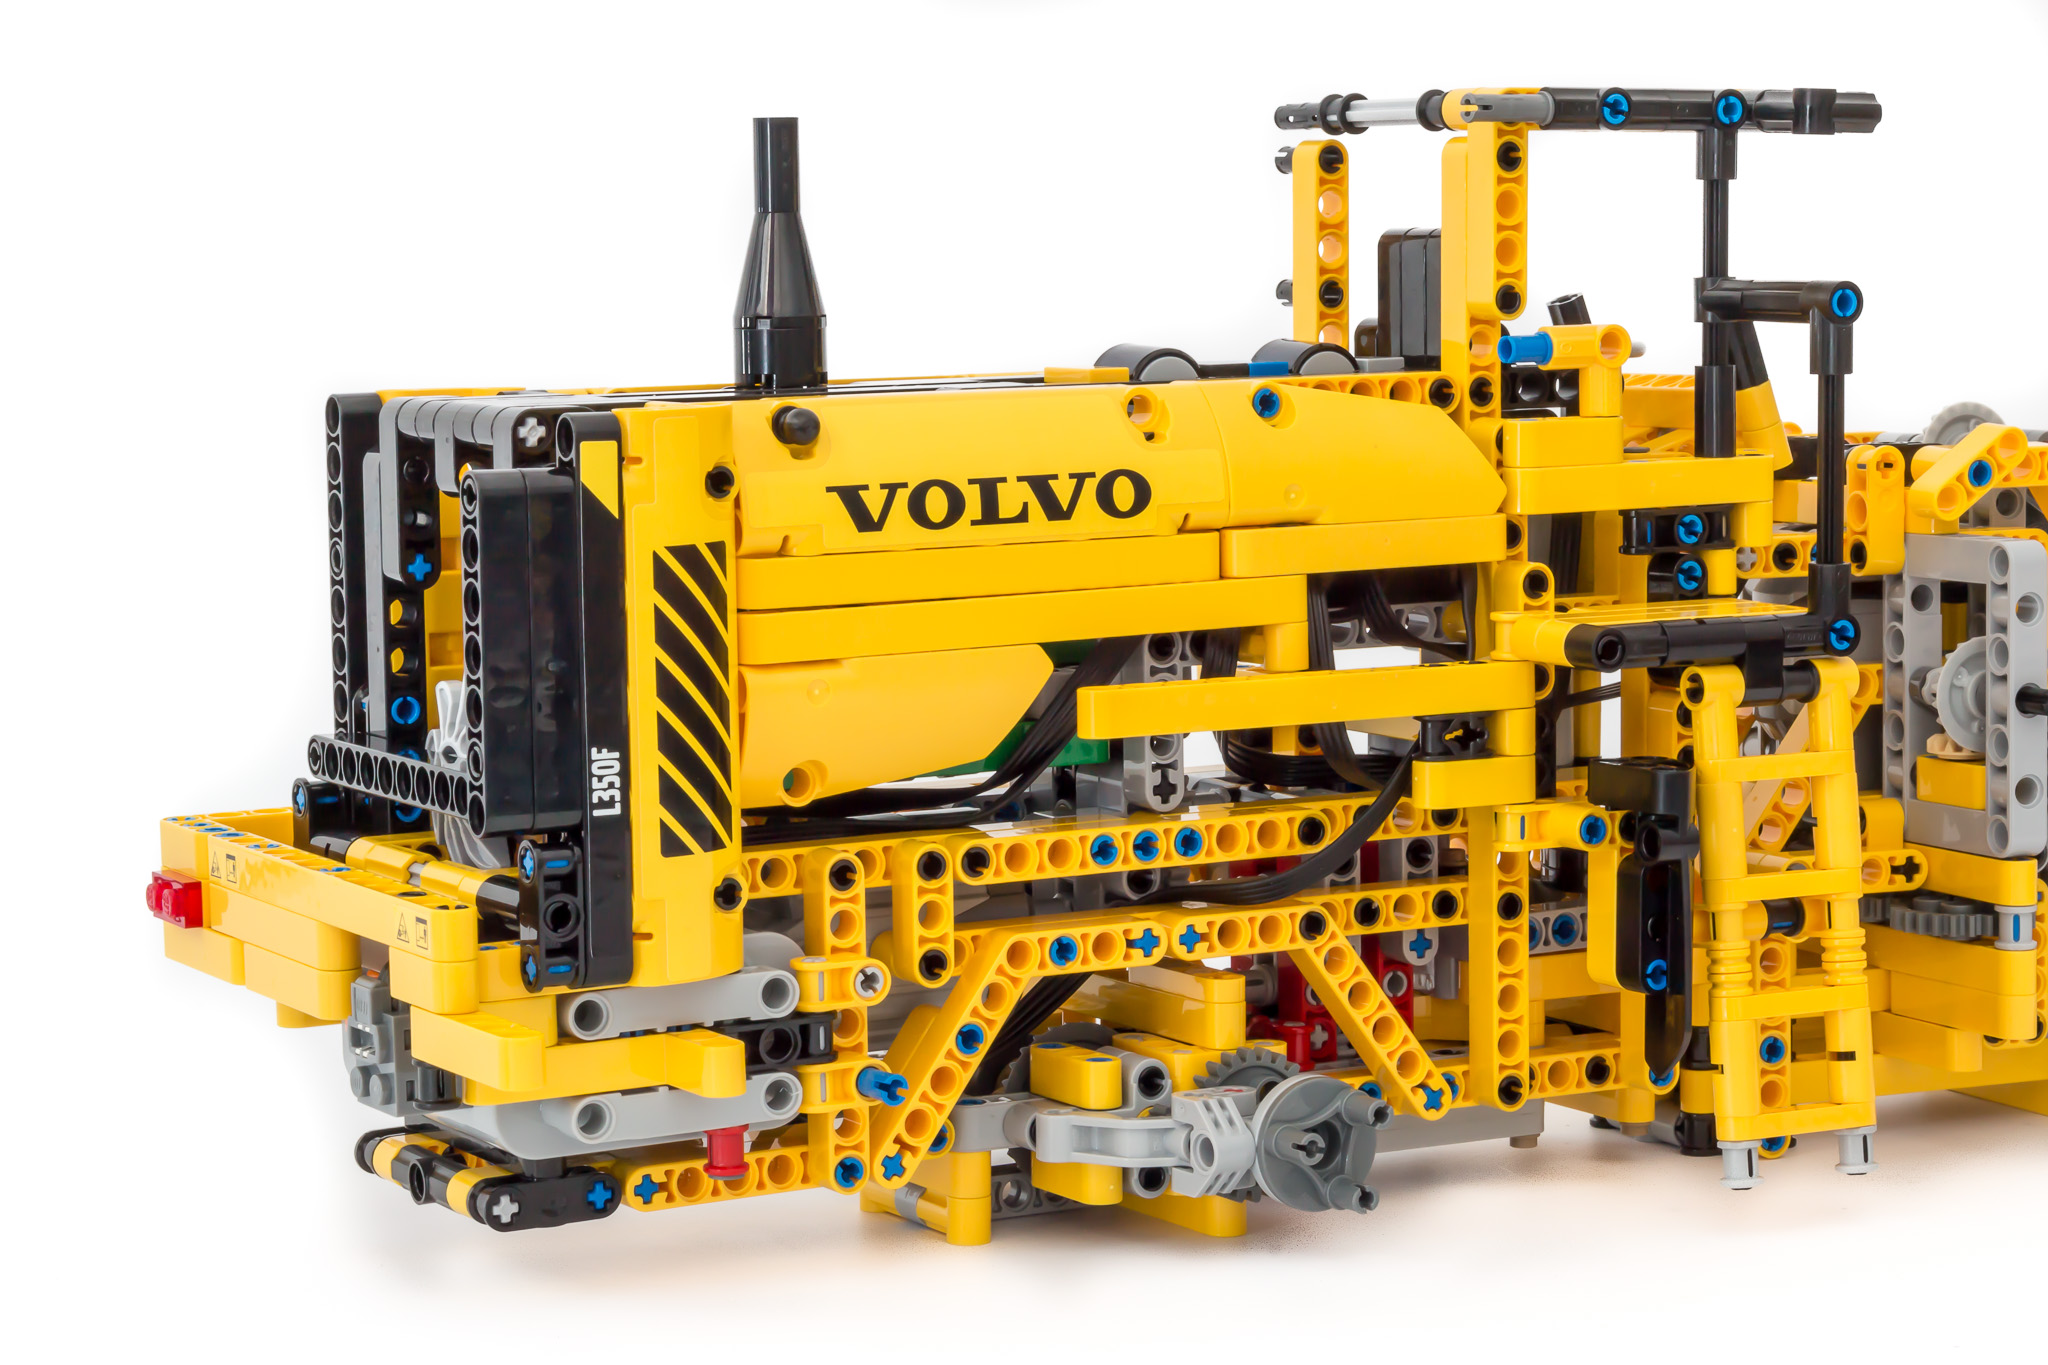 lego technic volvo front loader instructions